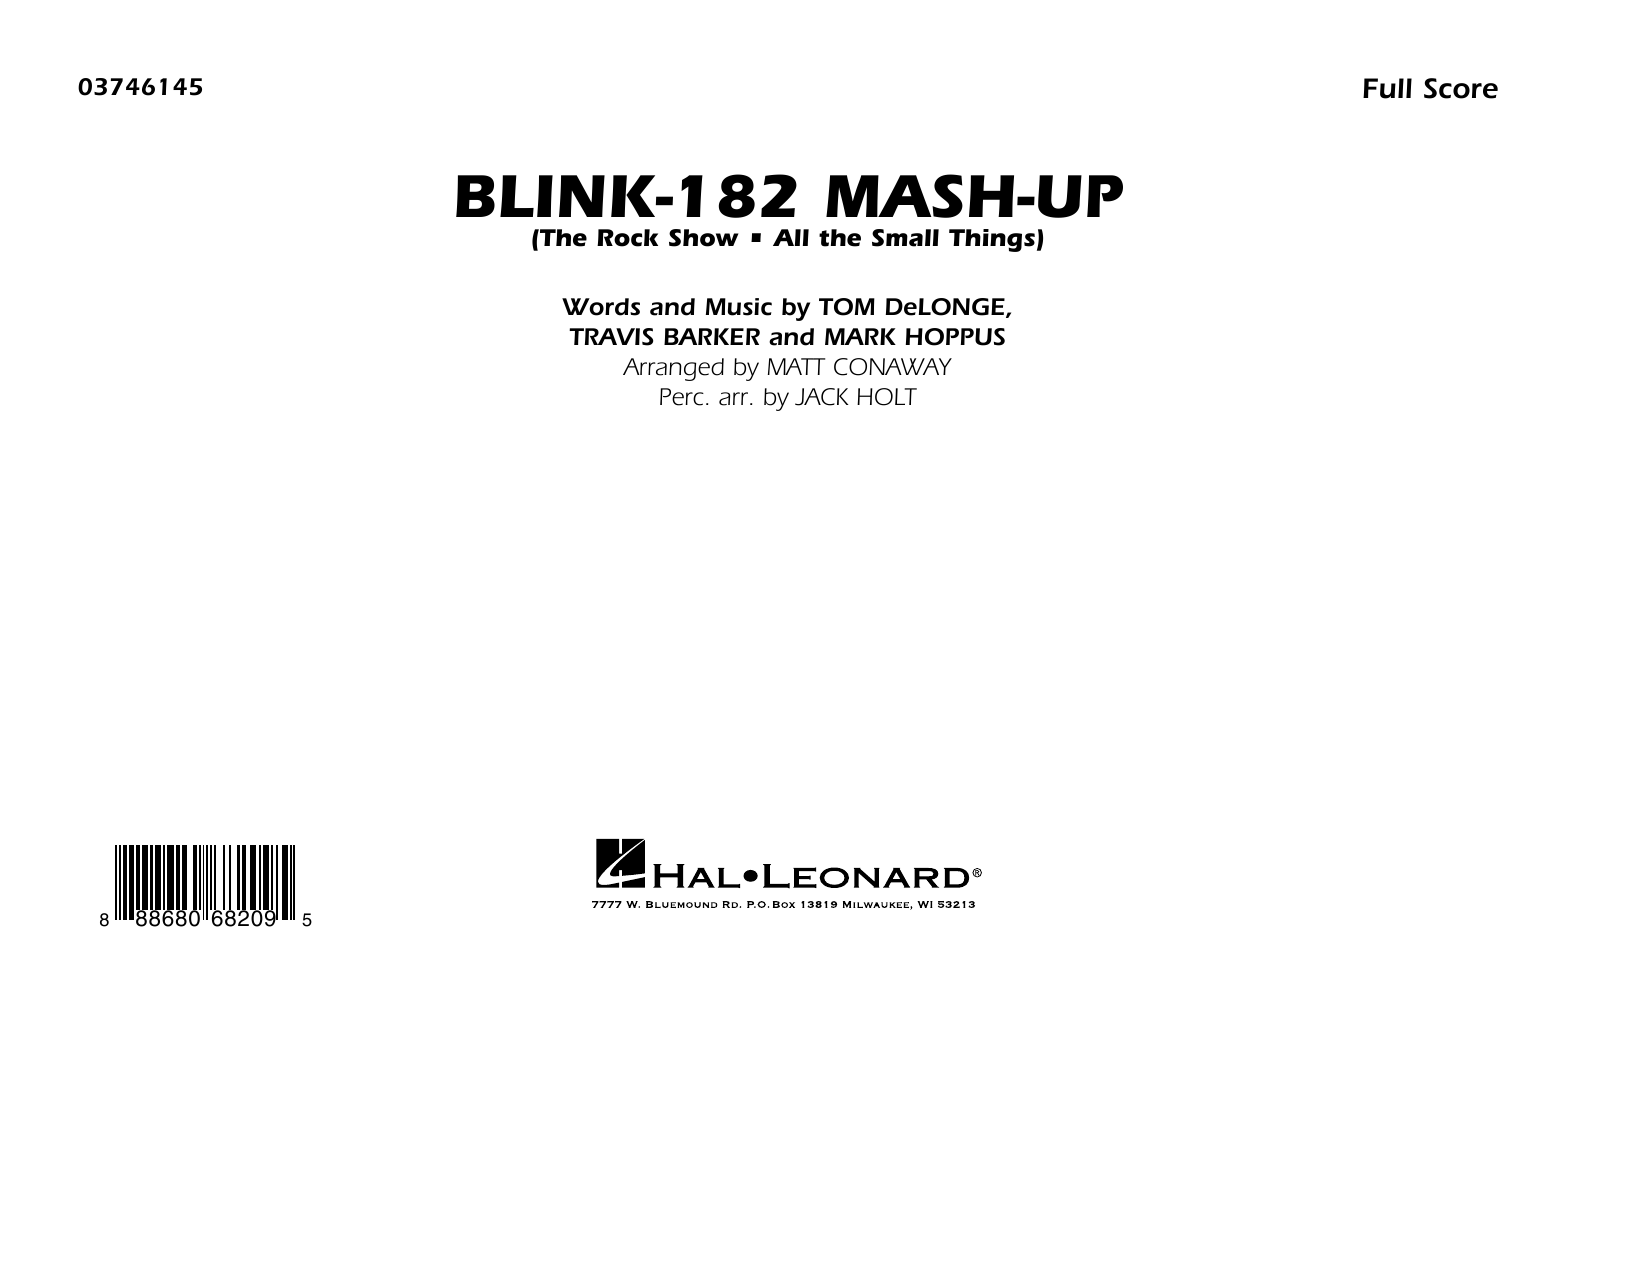 Blink-182 Mash-Up (COMPLETE) sheet music for marching band by Blink-182 and Matt Conaway. Score Image Preview.